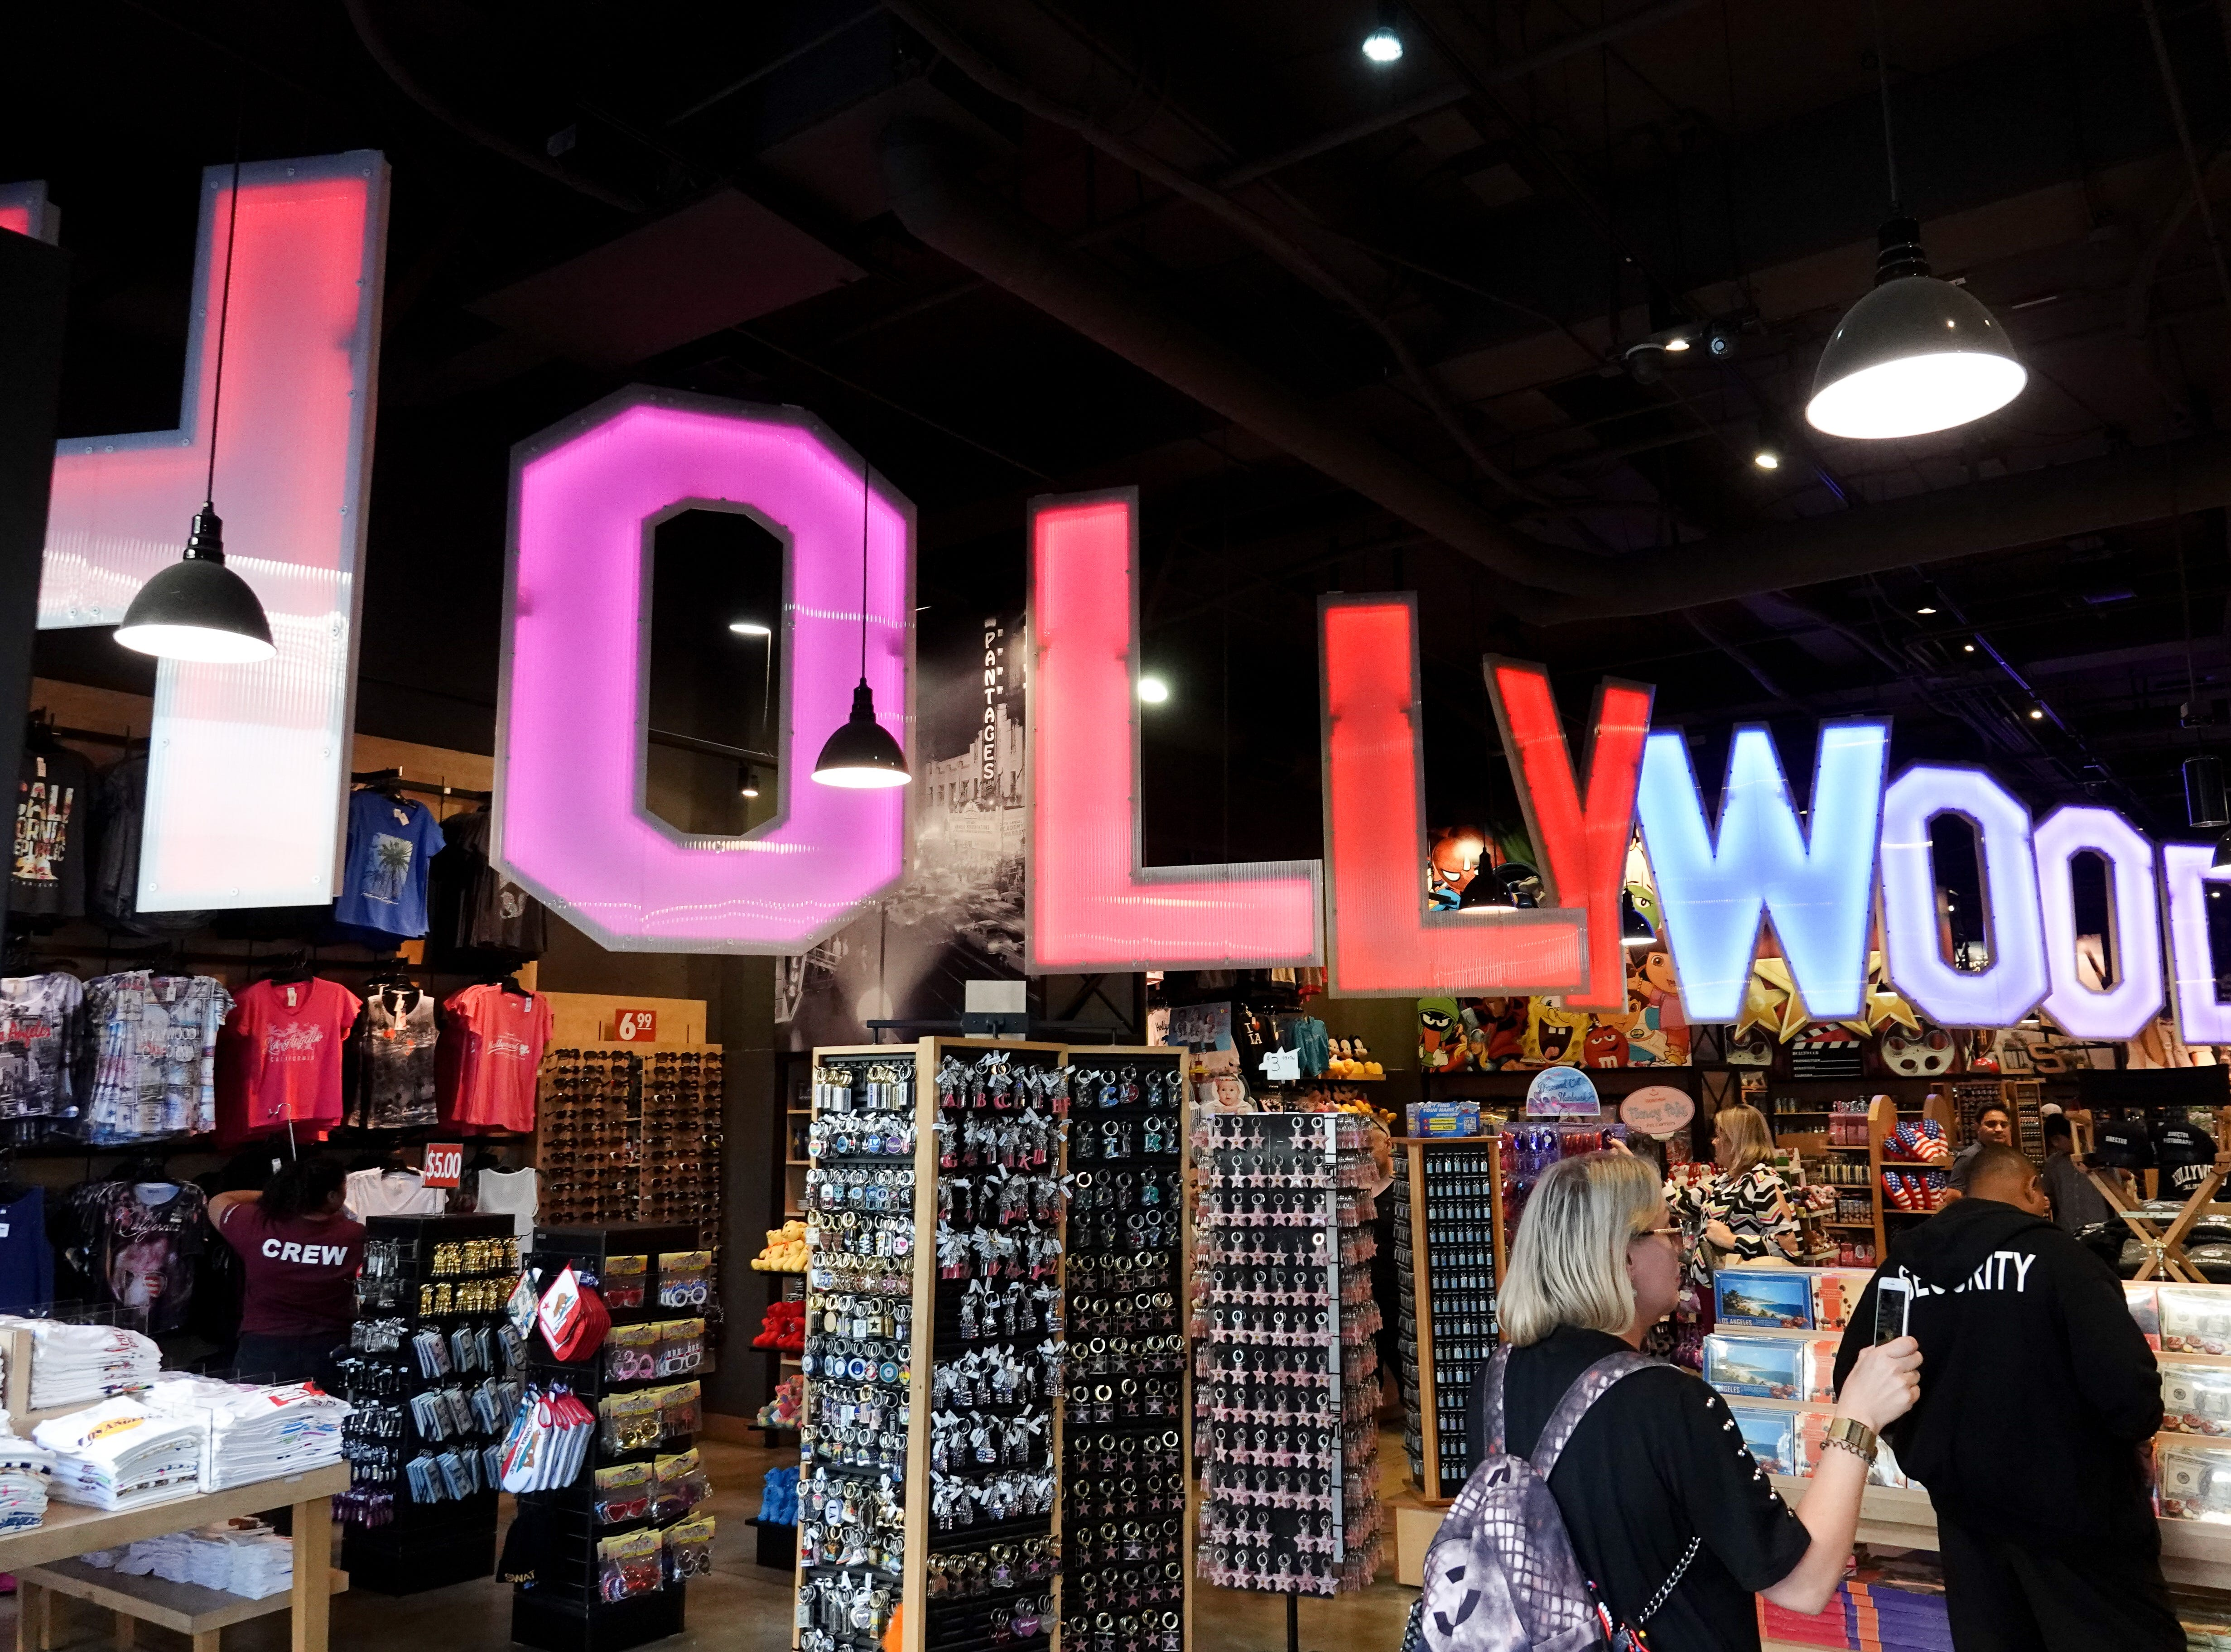 Next stop: Hollywood. A Hollywood gift shop recreates the classic Hollywood sign